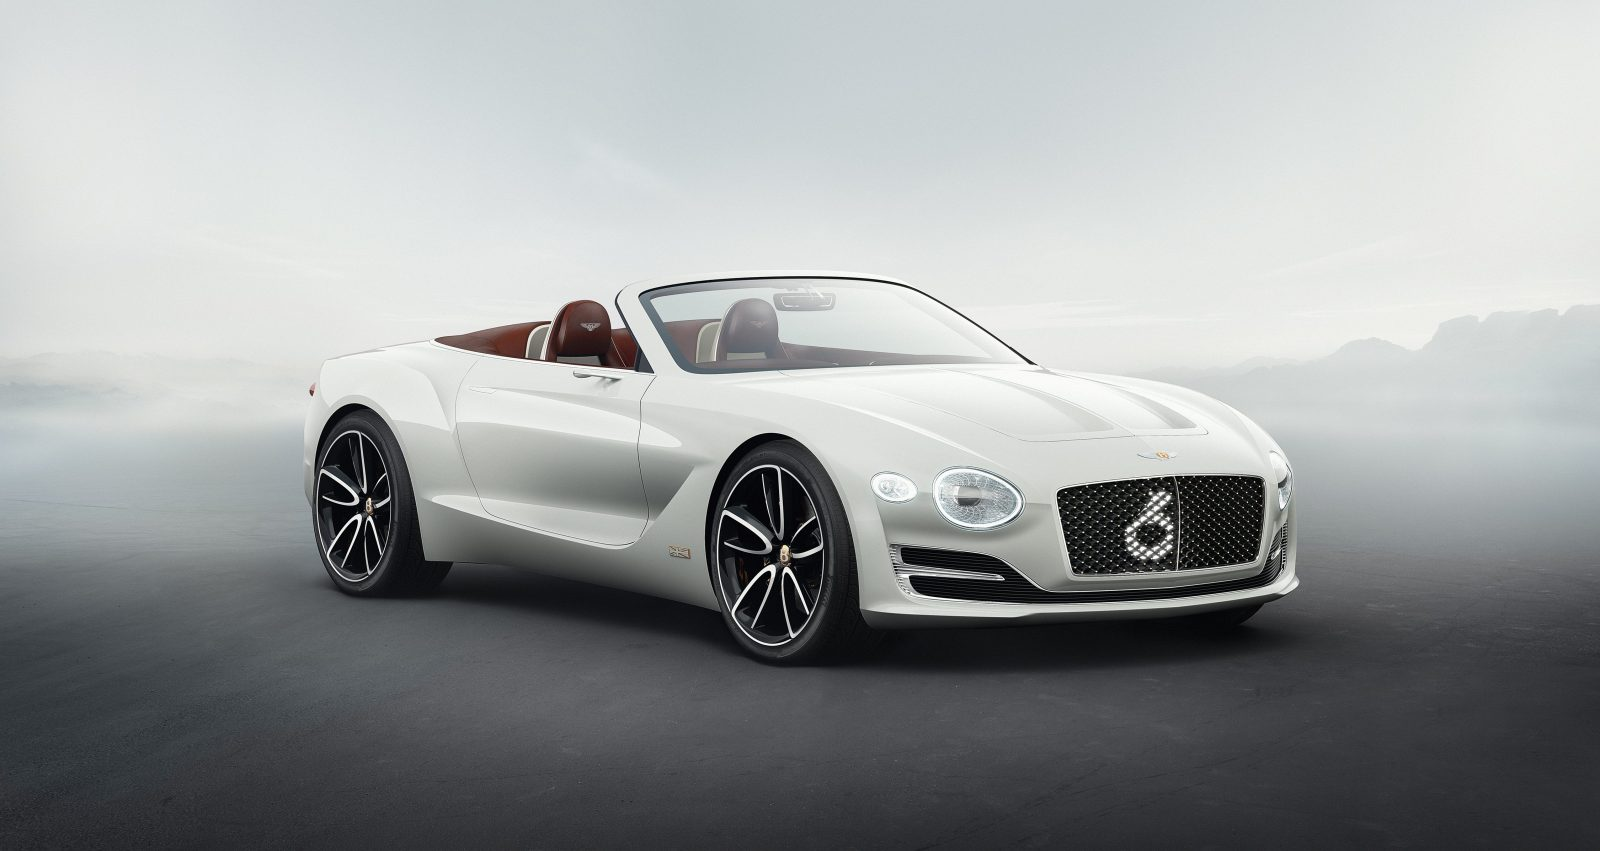 Bentley Considers Its Own All Electric Car Based On The Upcoming Porsche Audi Platform